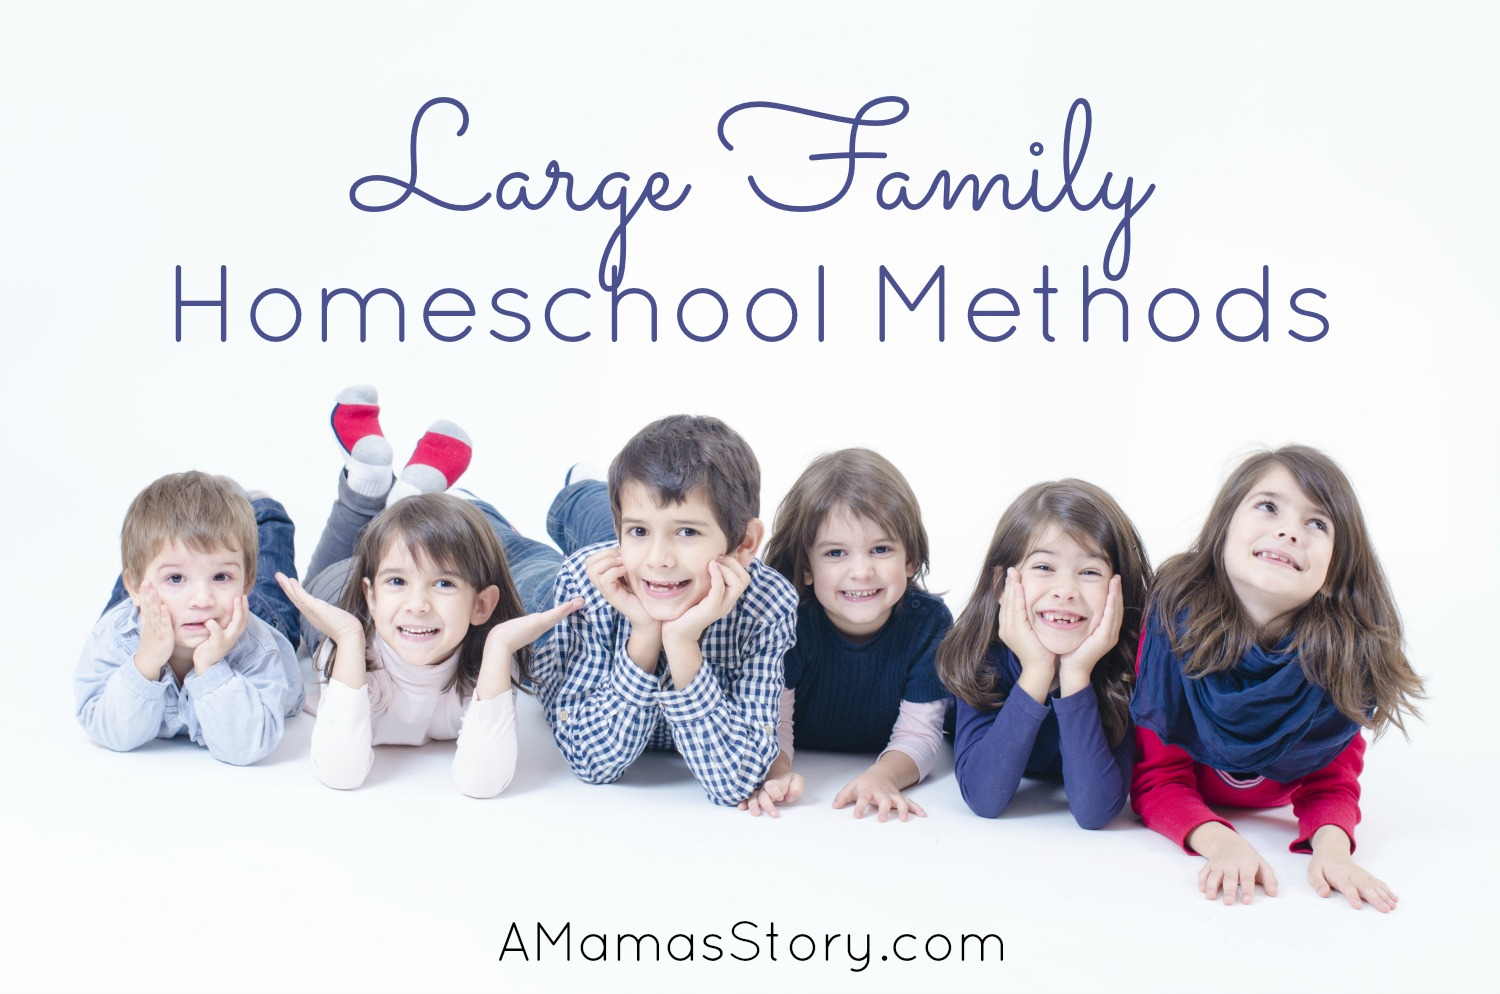 3 Methods for Homeschooling the Large Family